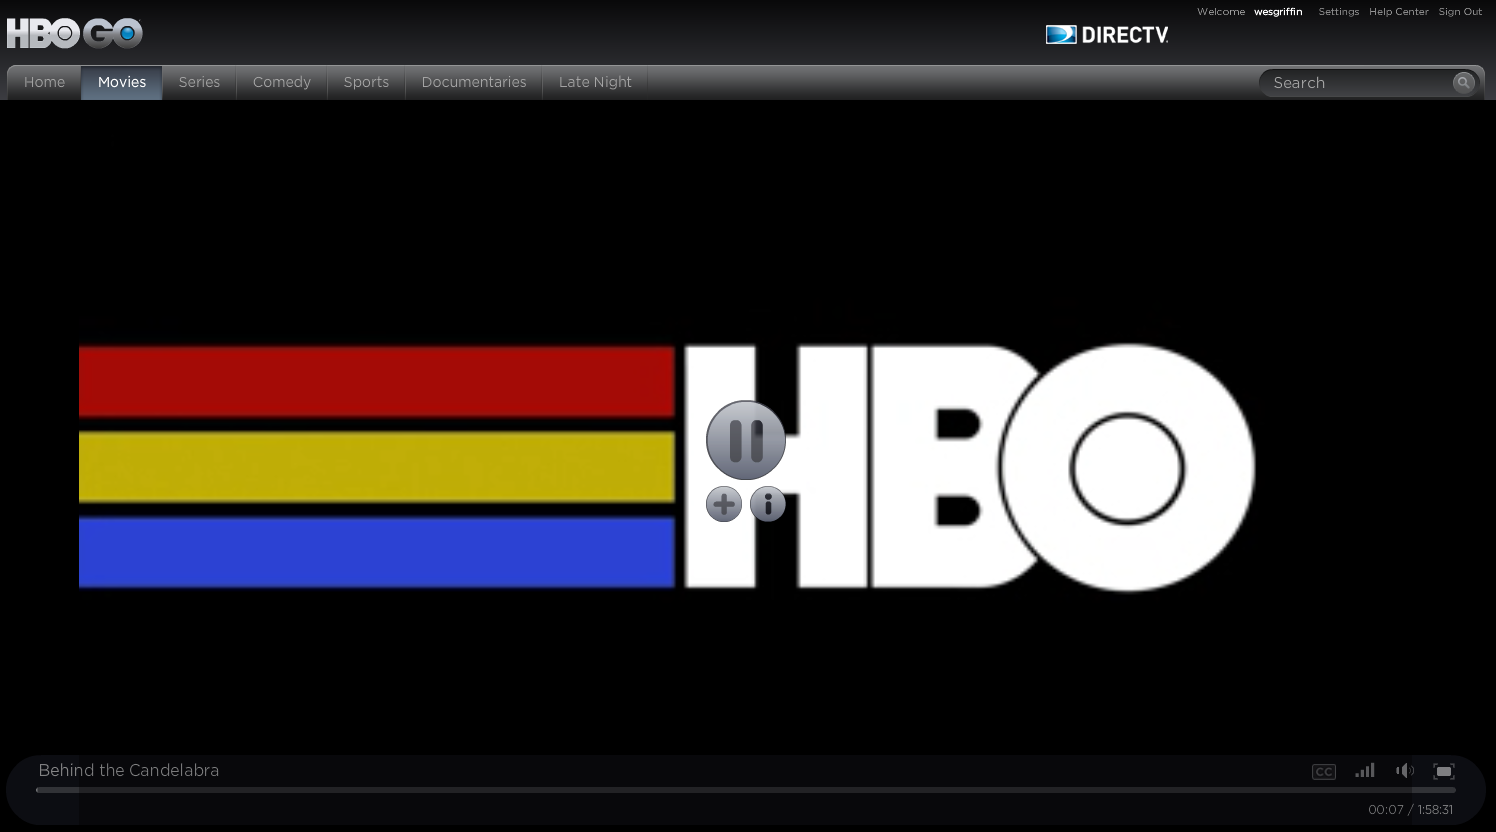 Signing up for a HBO GO subscription | My Private Network | Global